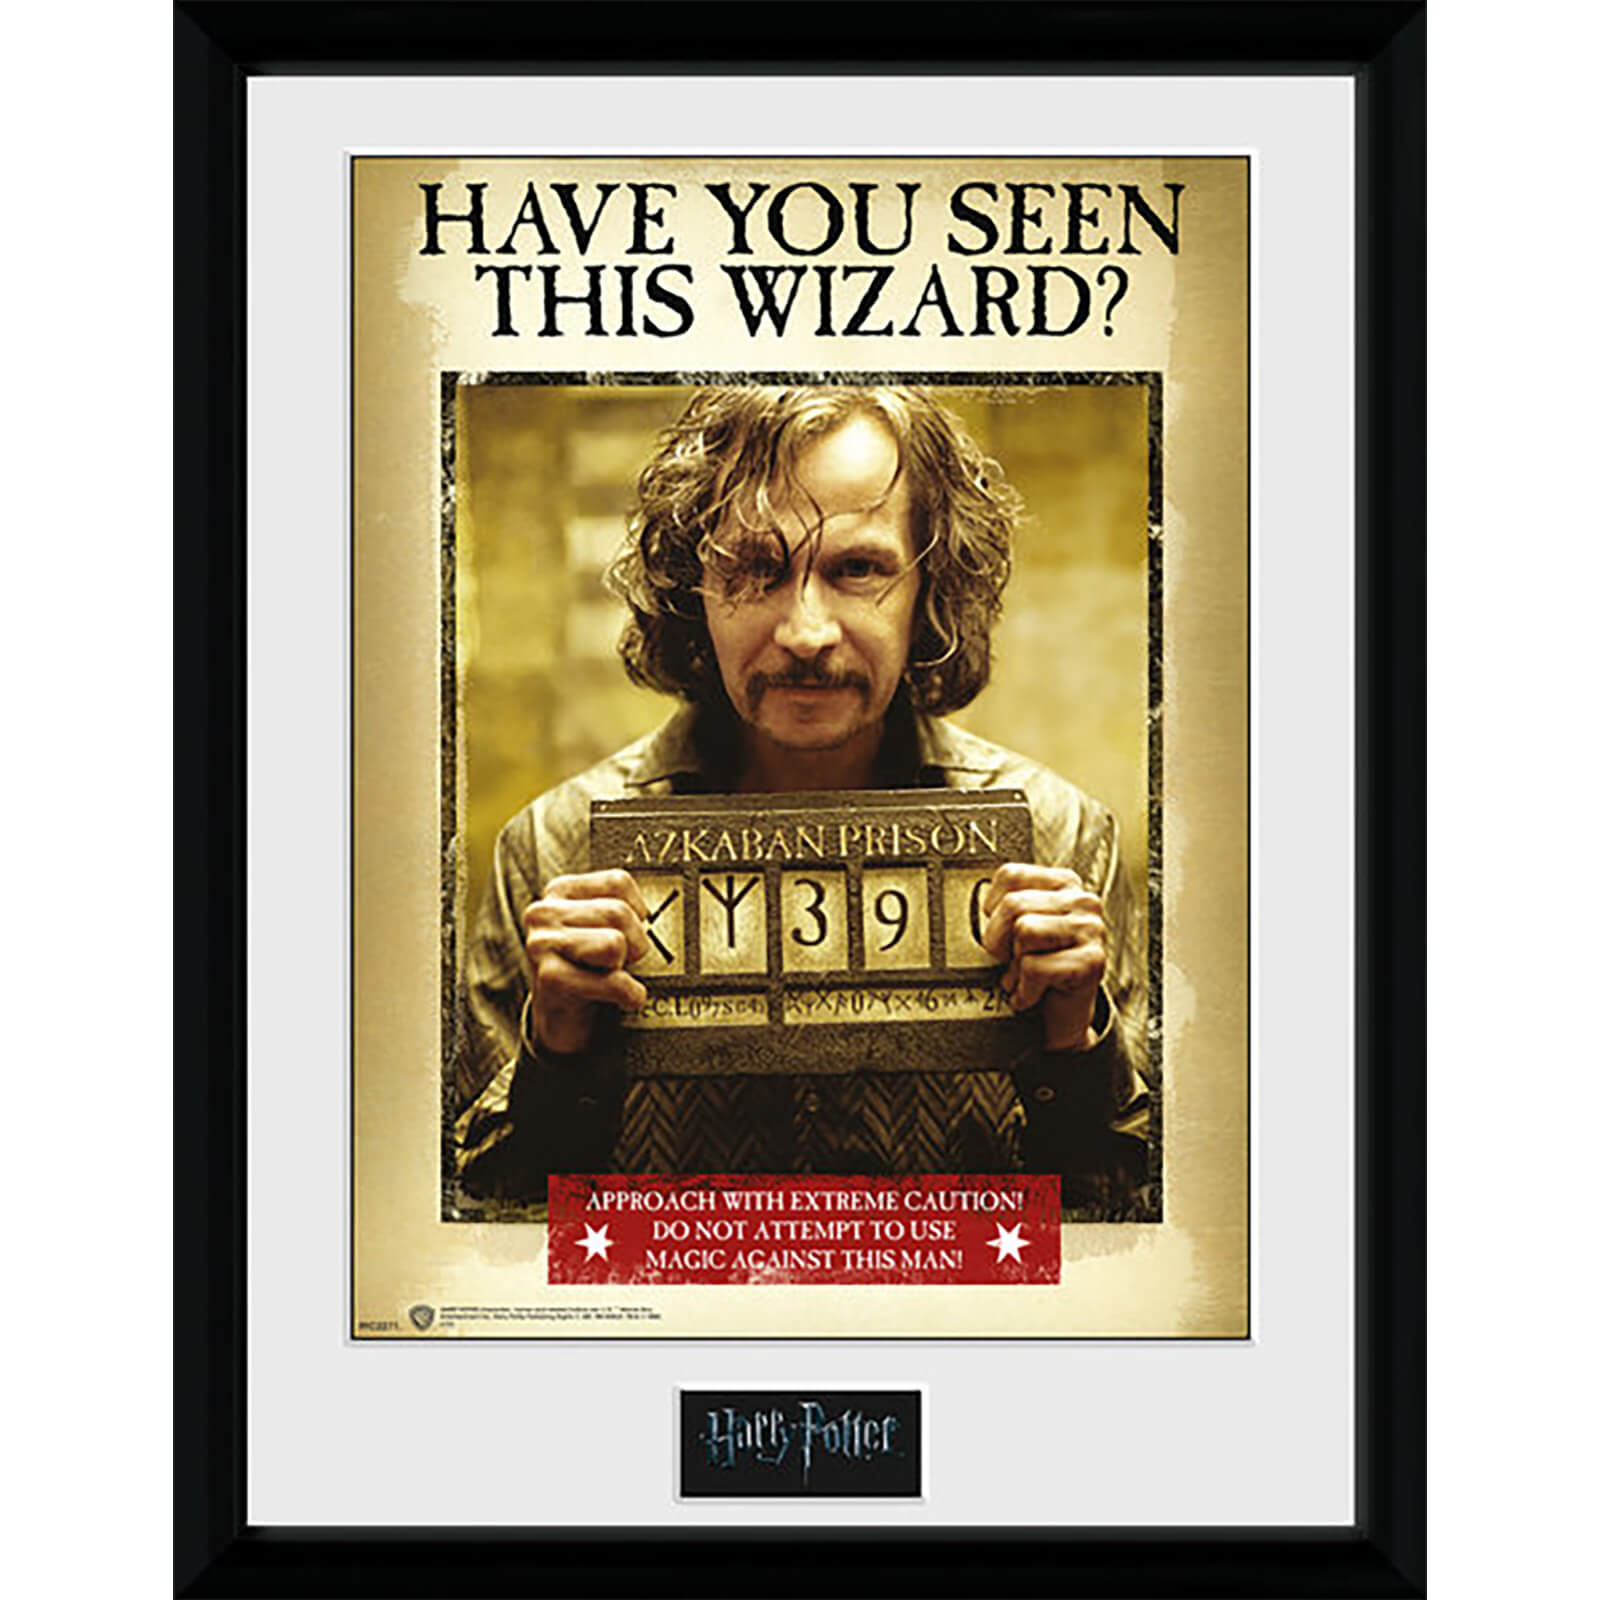 Harry Potter Sirius Azkaban - 16 x 12 Inches Framed Photograph